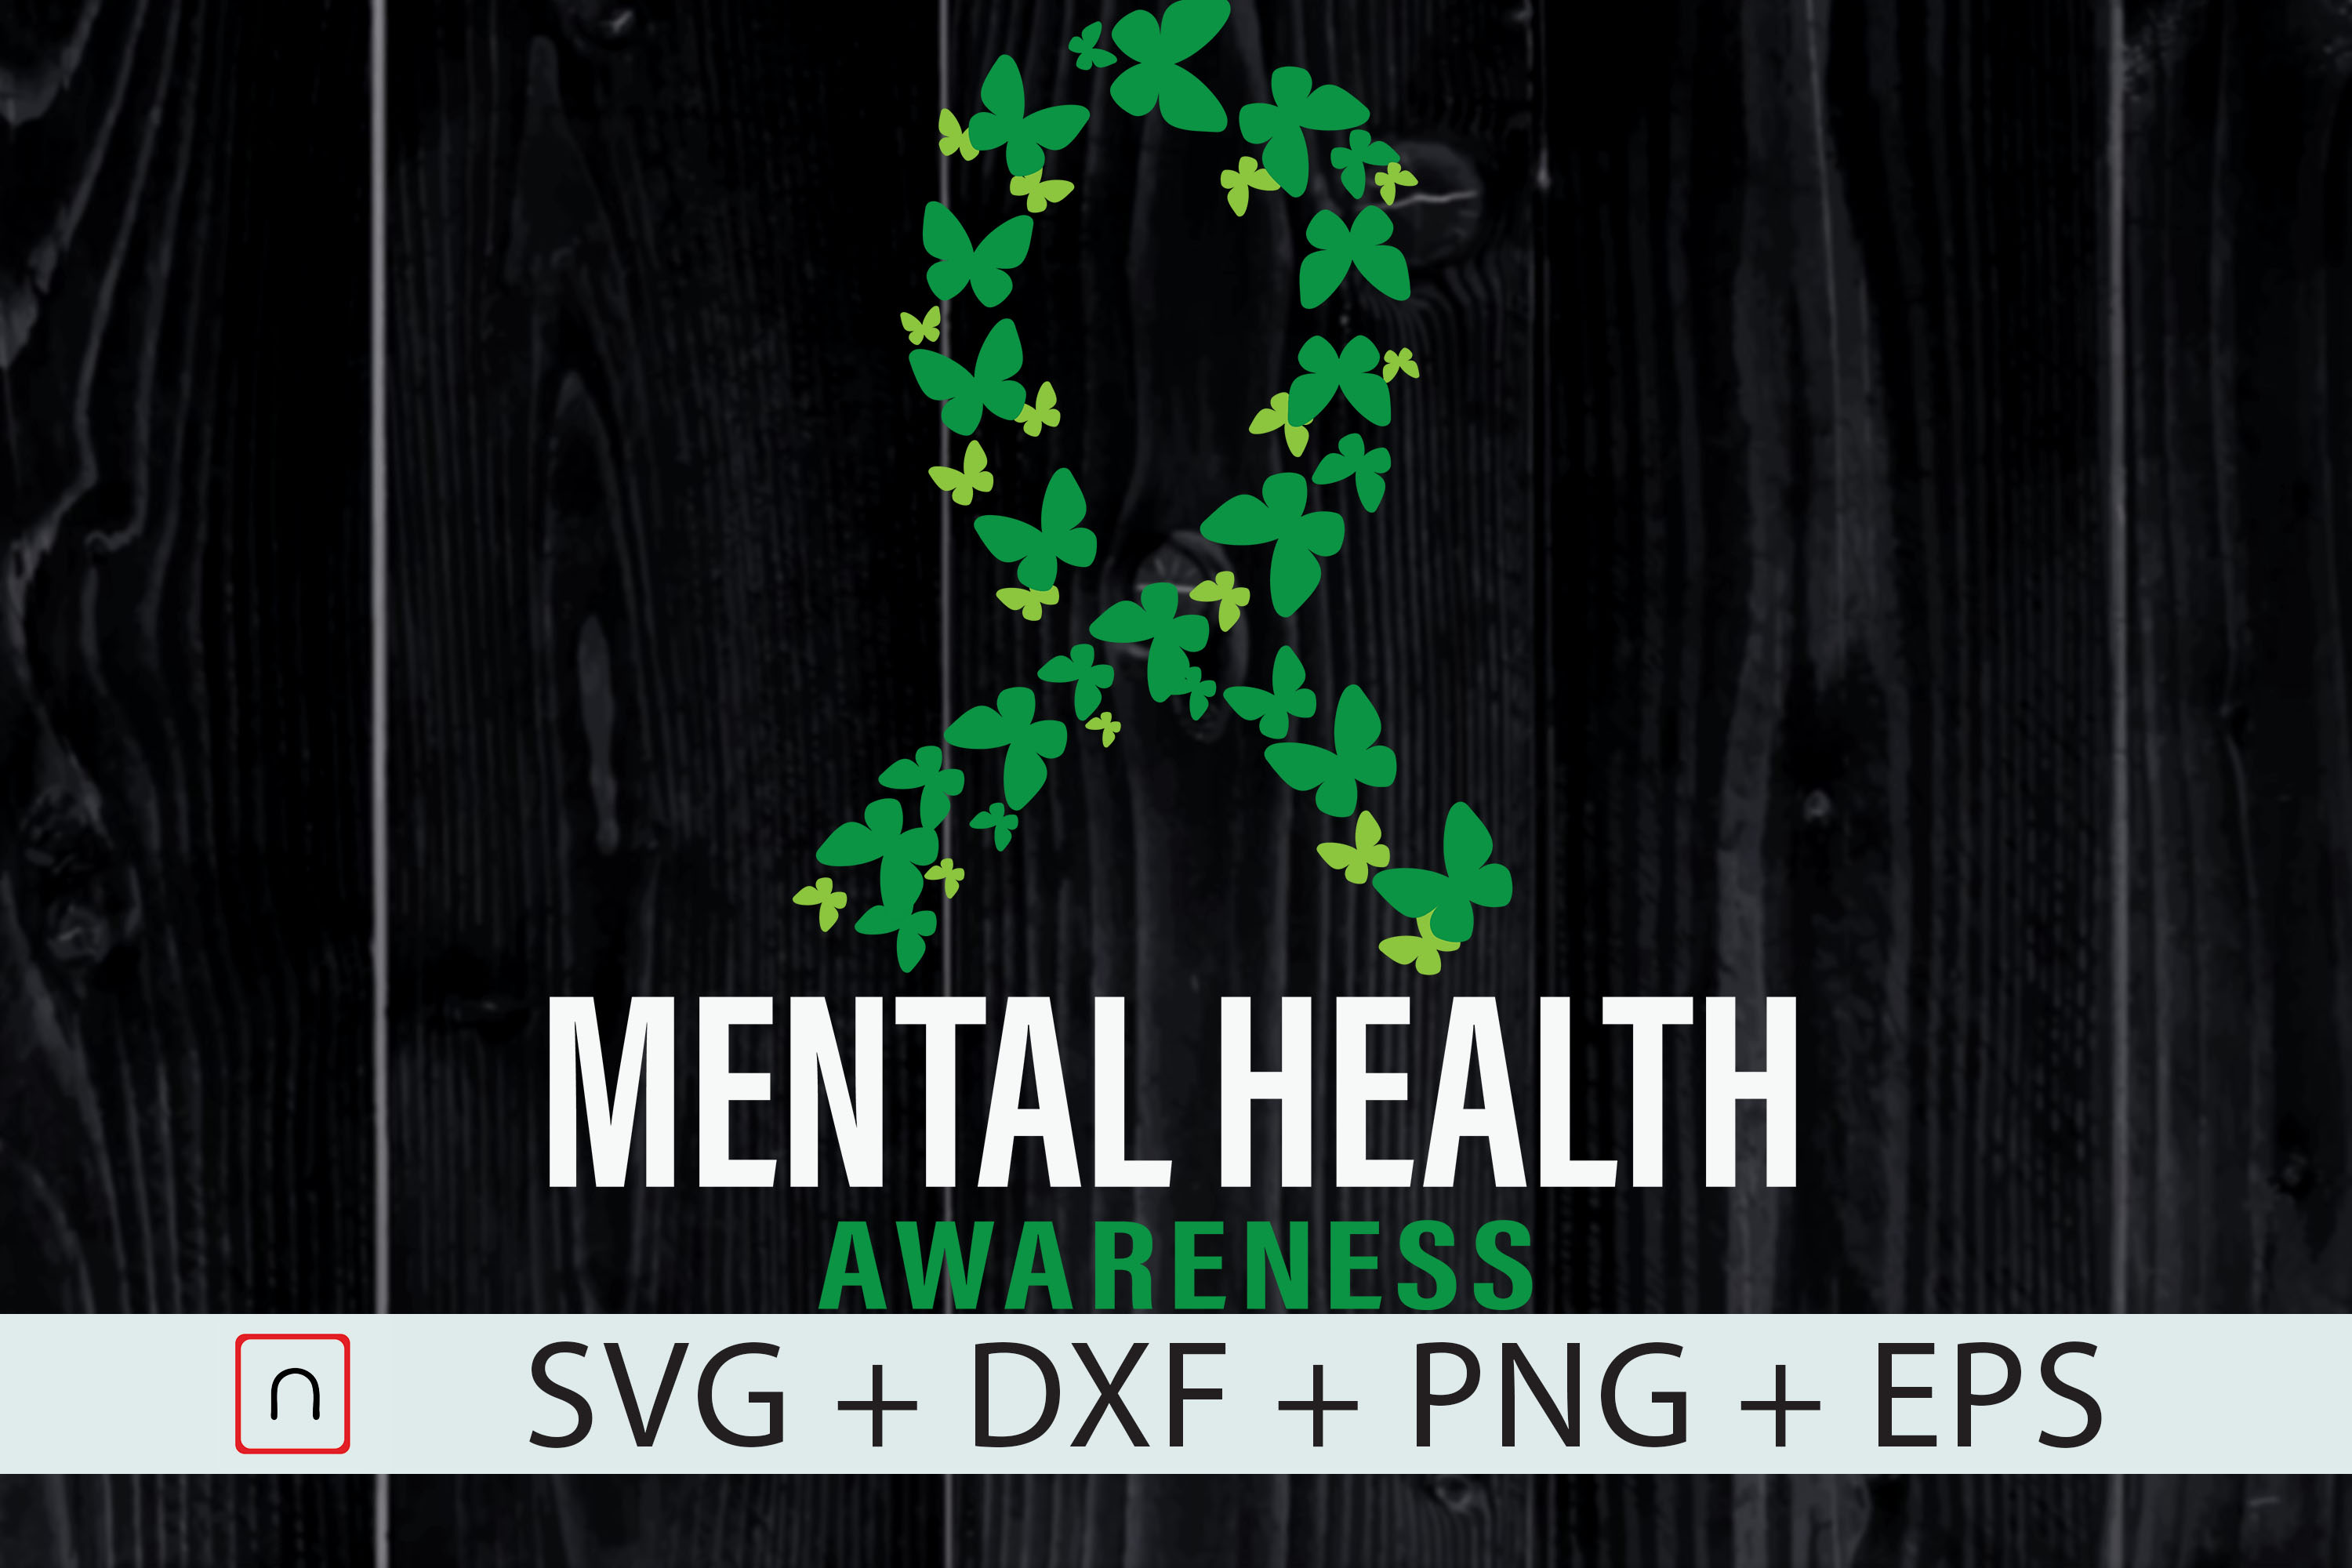 Download Free Mental Health Stop The Stigma Cricut Graphic By Novalia for Cricut Explore, Silhouette and other cutting machines.